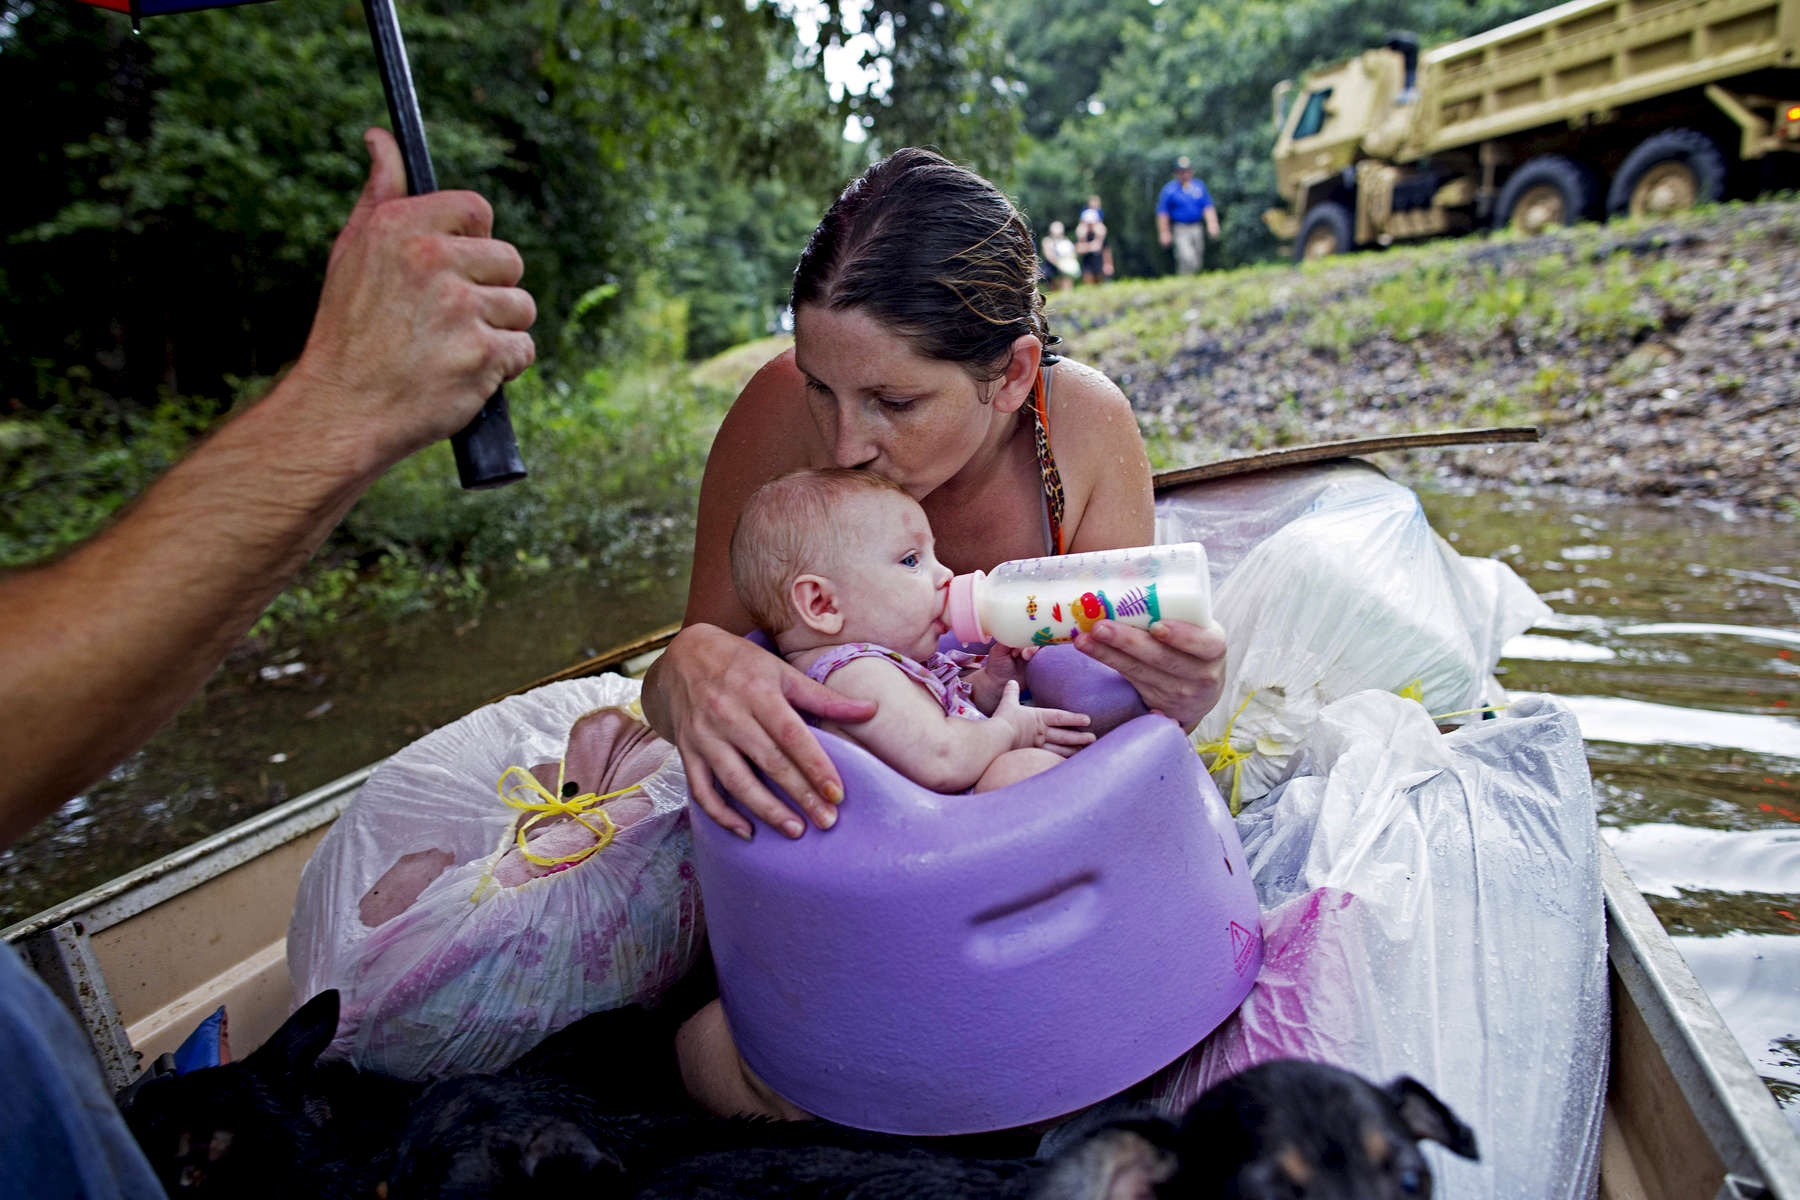 Danielle Blount kisses her 3-month-old baby Ember and feeds her while they wait to be evacuated by members of the Louisiana Army National Guard near Walker, La. USA, after heavy rains inundated the region, Sunday, Aug. 14, 2016. Downpours in some areas of southern Louisiana came close to 2 feet over a 48-hour period according to the National Weather Service. (AP Photo/Max Becherer)